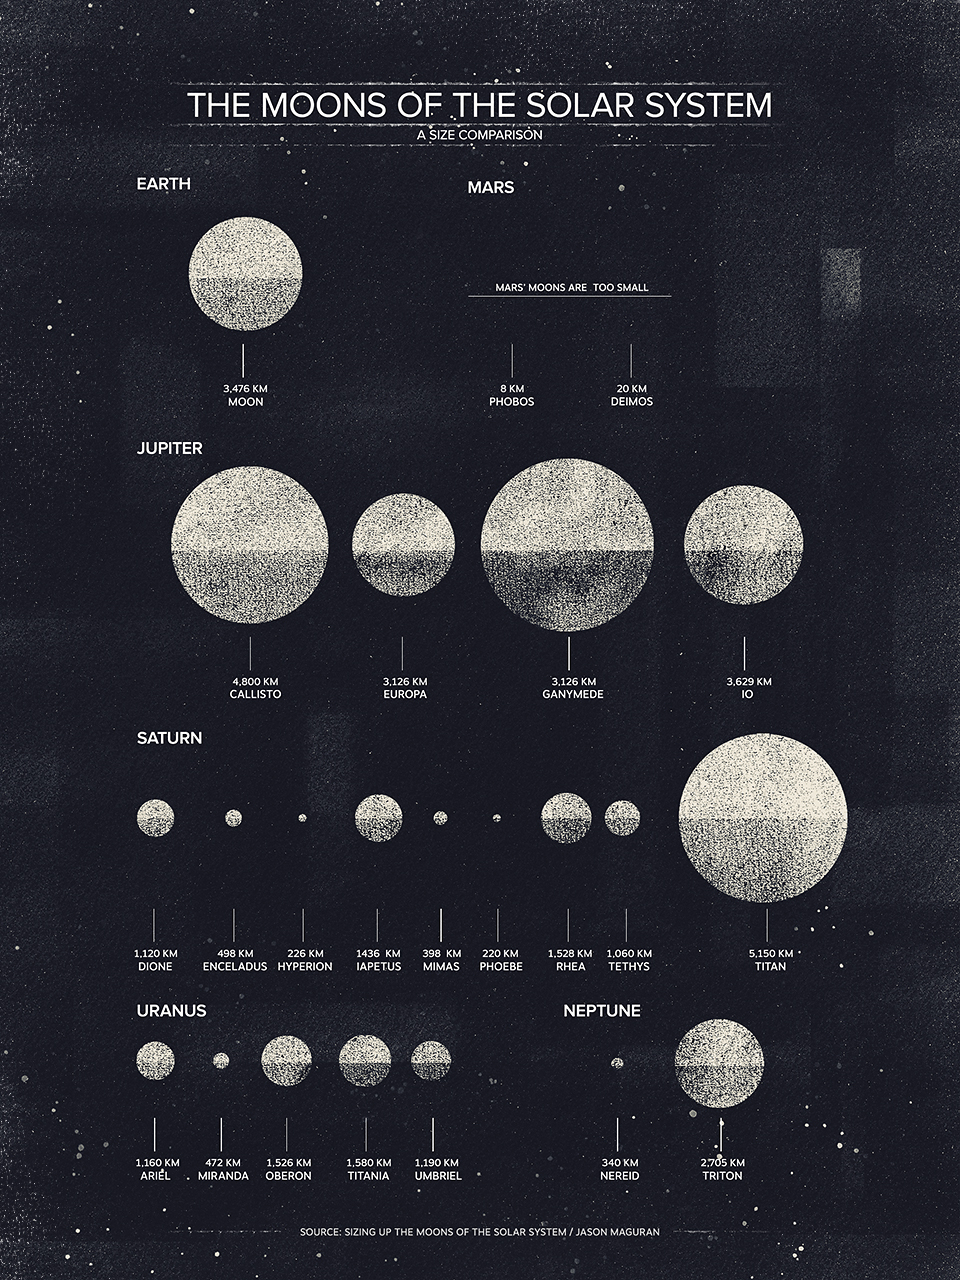 The Moons of the Solar System infographic by Dan Matutina